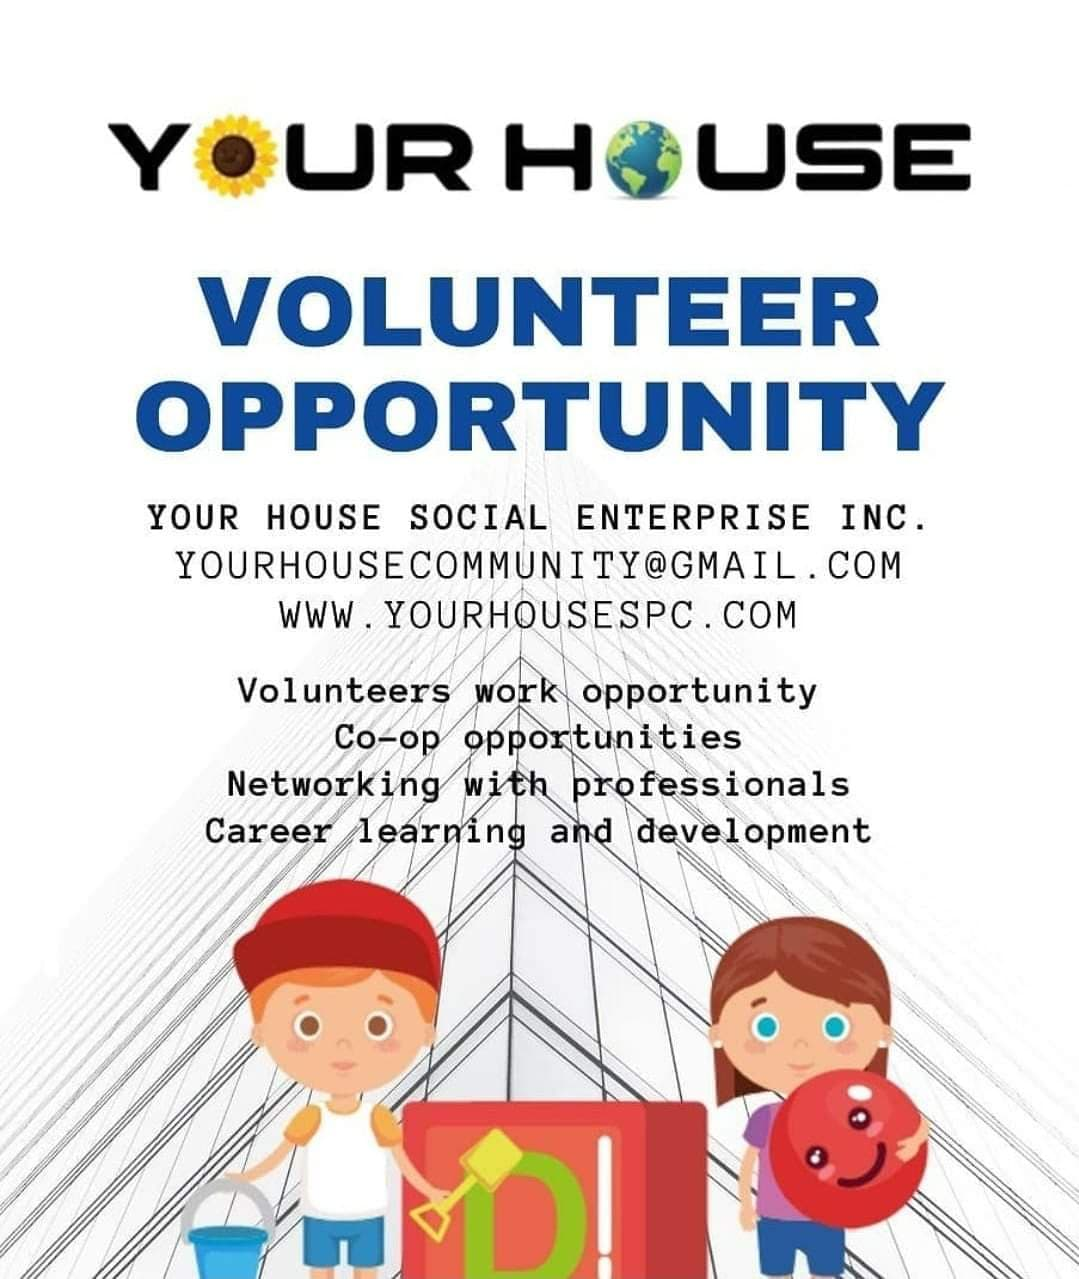 Your House Volunteer Opportunity